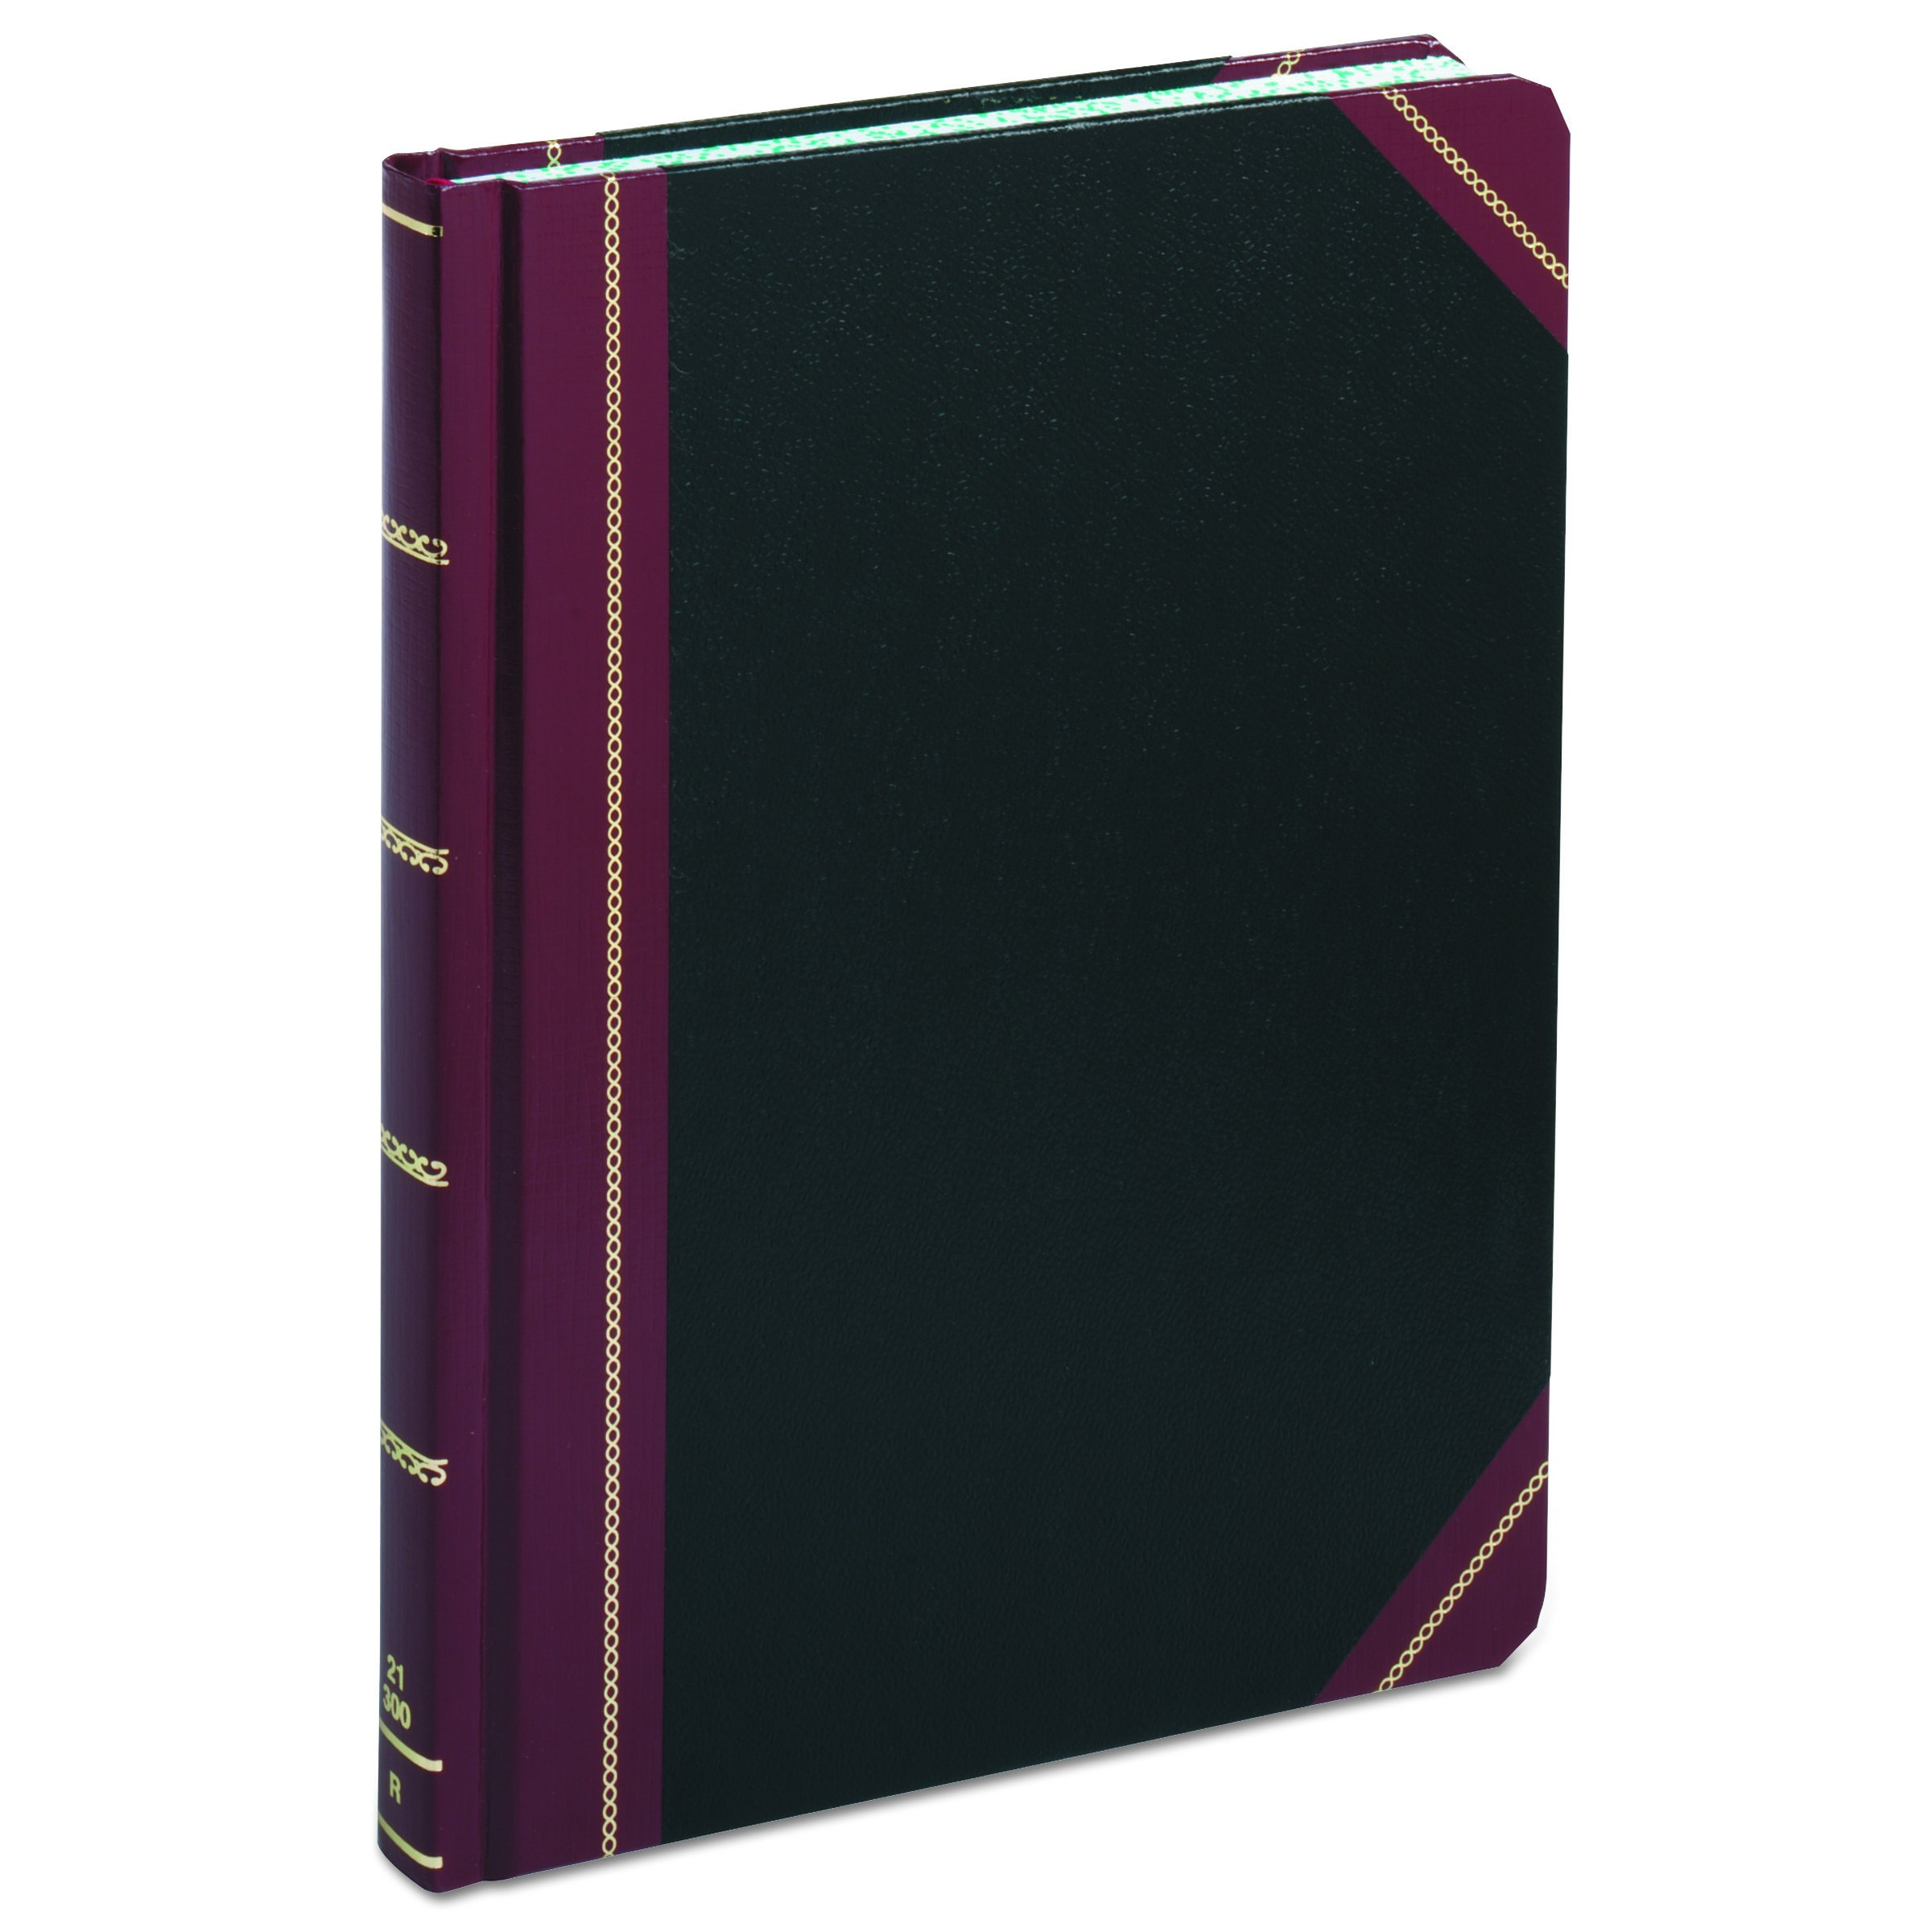 Boorum & Pease Record Book, 21 Series, Record Ruled, 8-1/8'' x 10-3/8'', 300 Pages  (21-300-R)